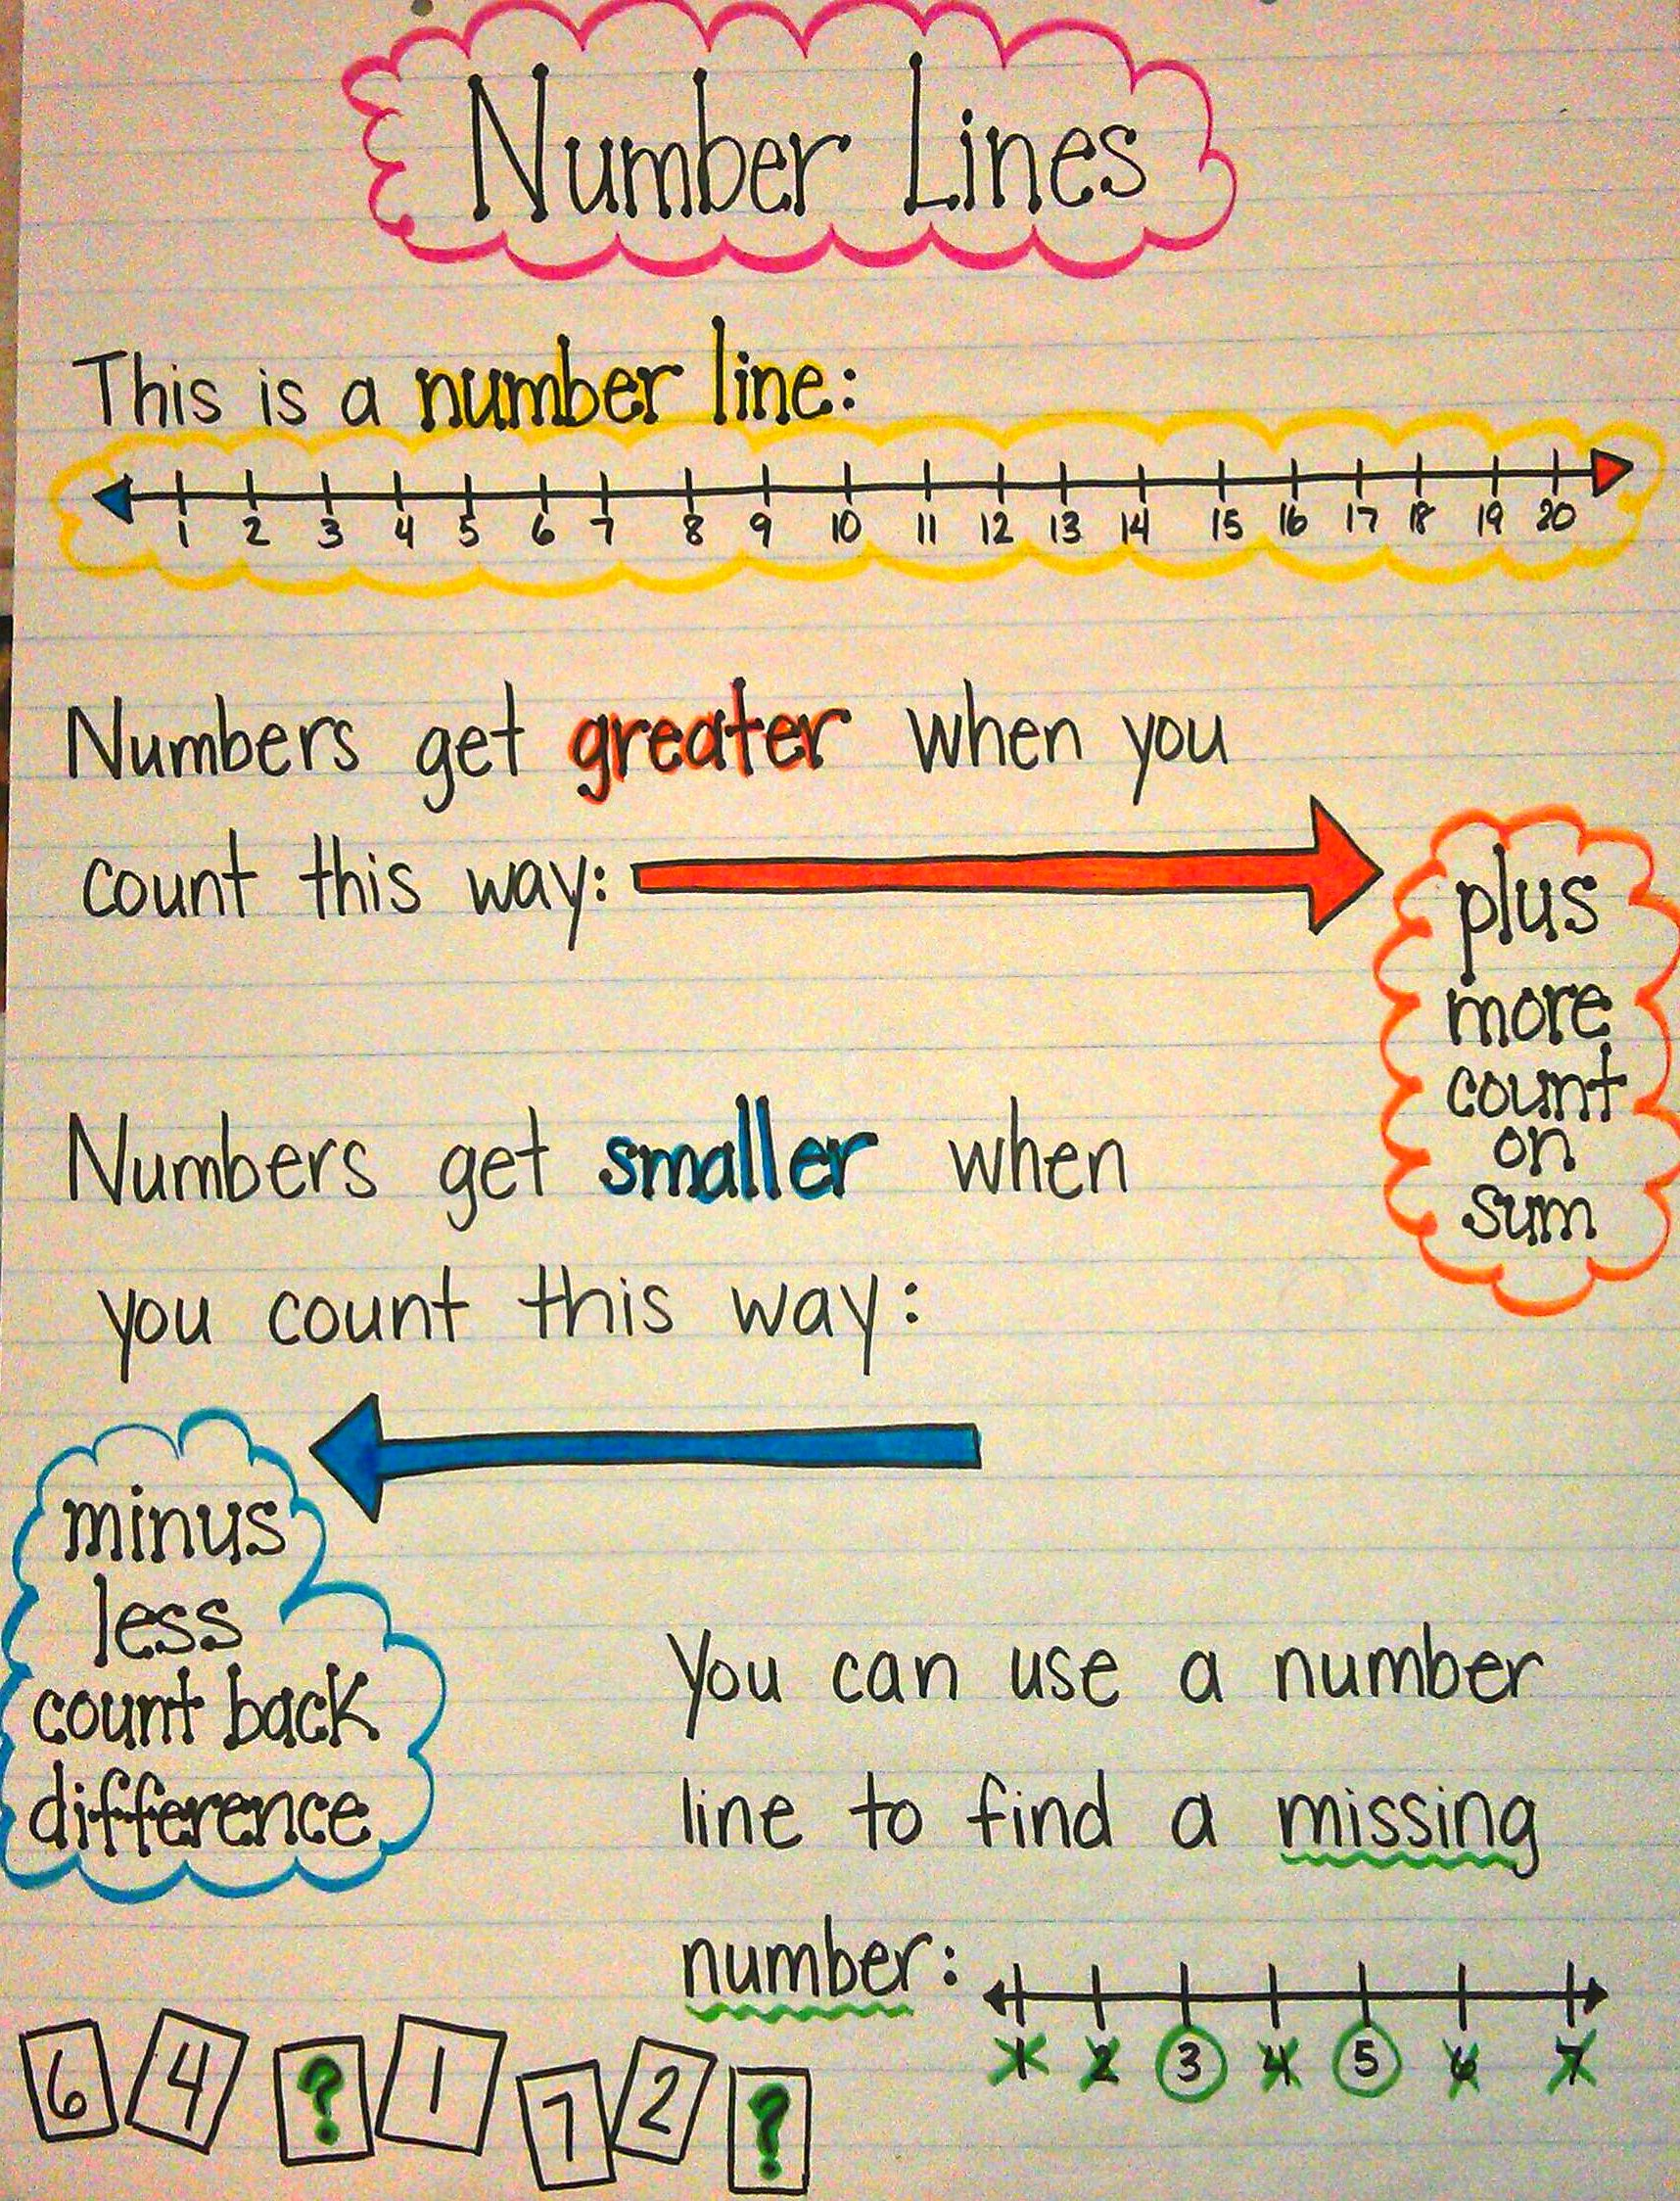 worksheet Number Line Maker number lines ironically the maker of this line uses same color codes